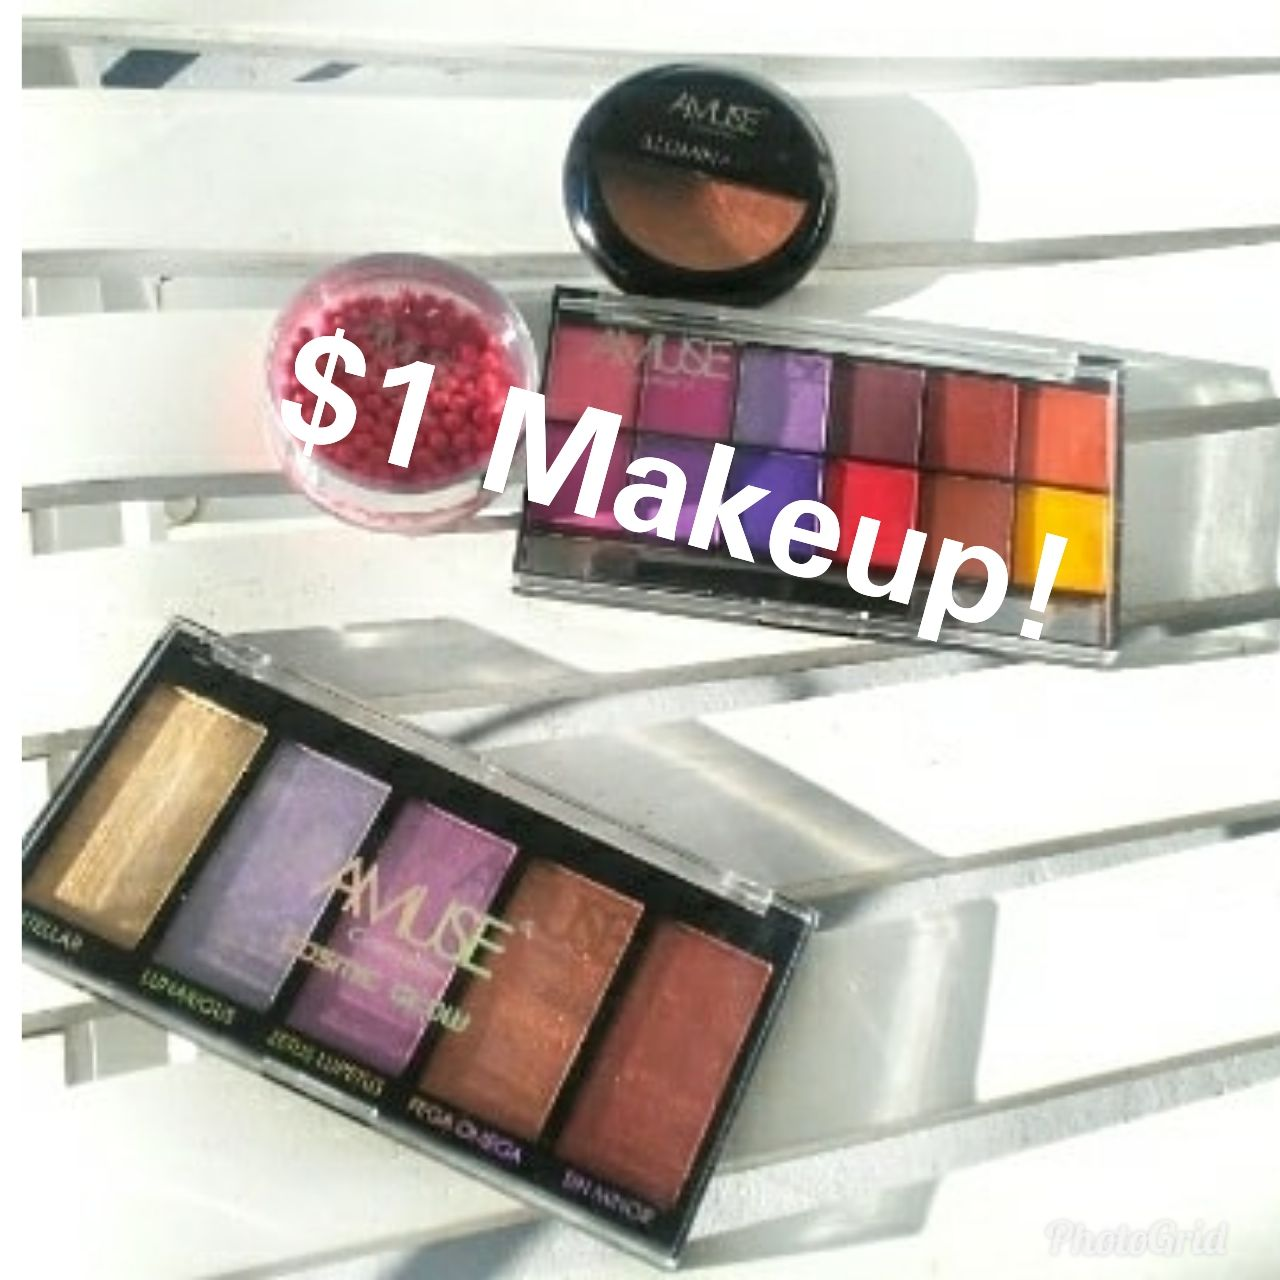 This website has 1 makeup! Most of their beauty items